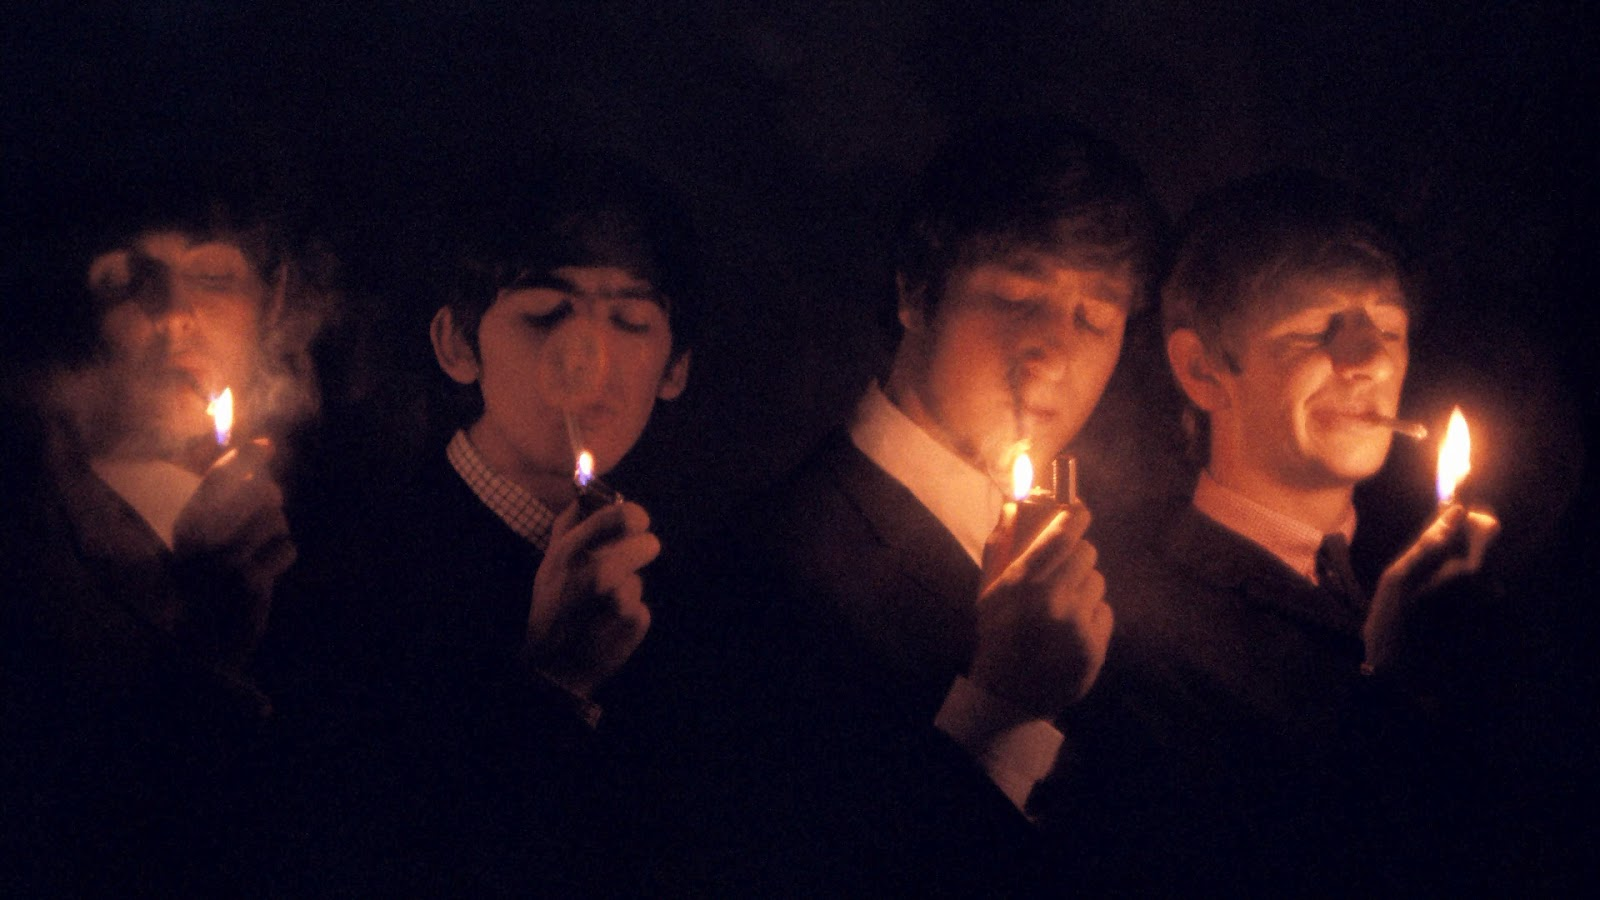 http://1.bp.blogspot.com/-FEkRt56V_bY/T3_Ev6cXnuI/AAAAAAAAEE0/GaXgMWtTg8Y/s1600/elite_photo-the_beatles_loved_smoking.jpg